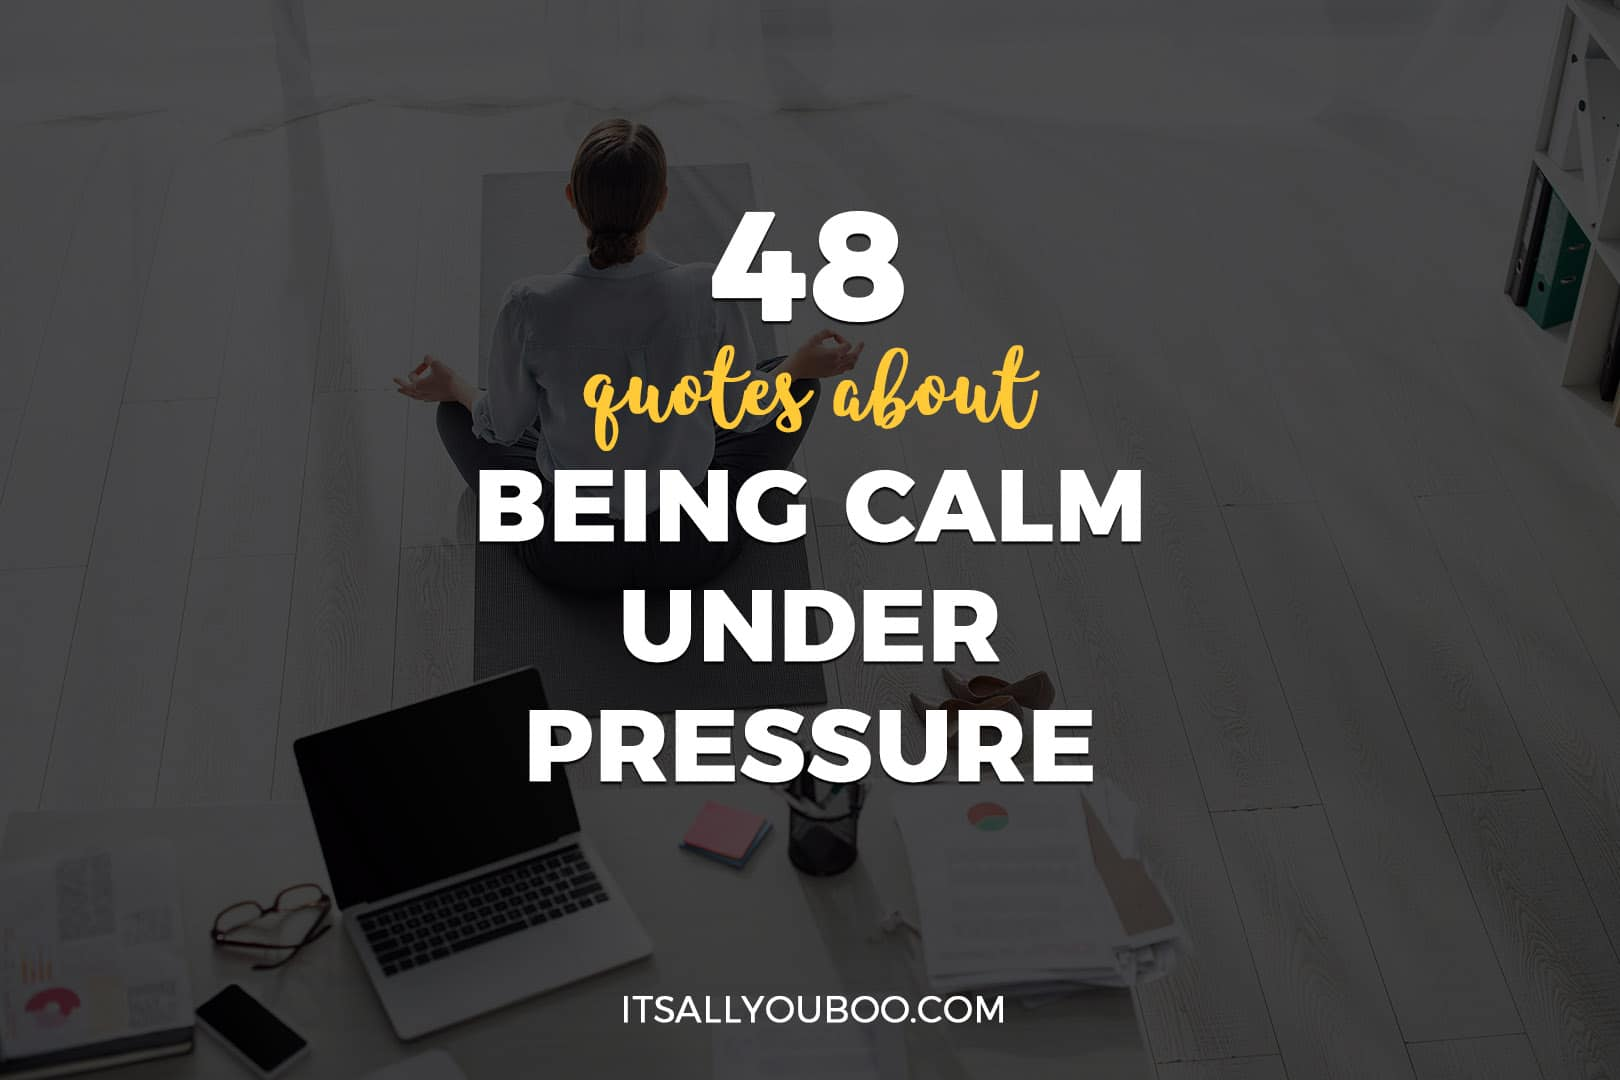 48 Quotes about Being Calm Under Pressure